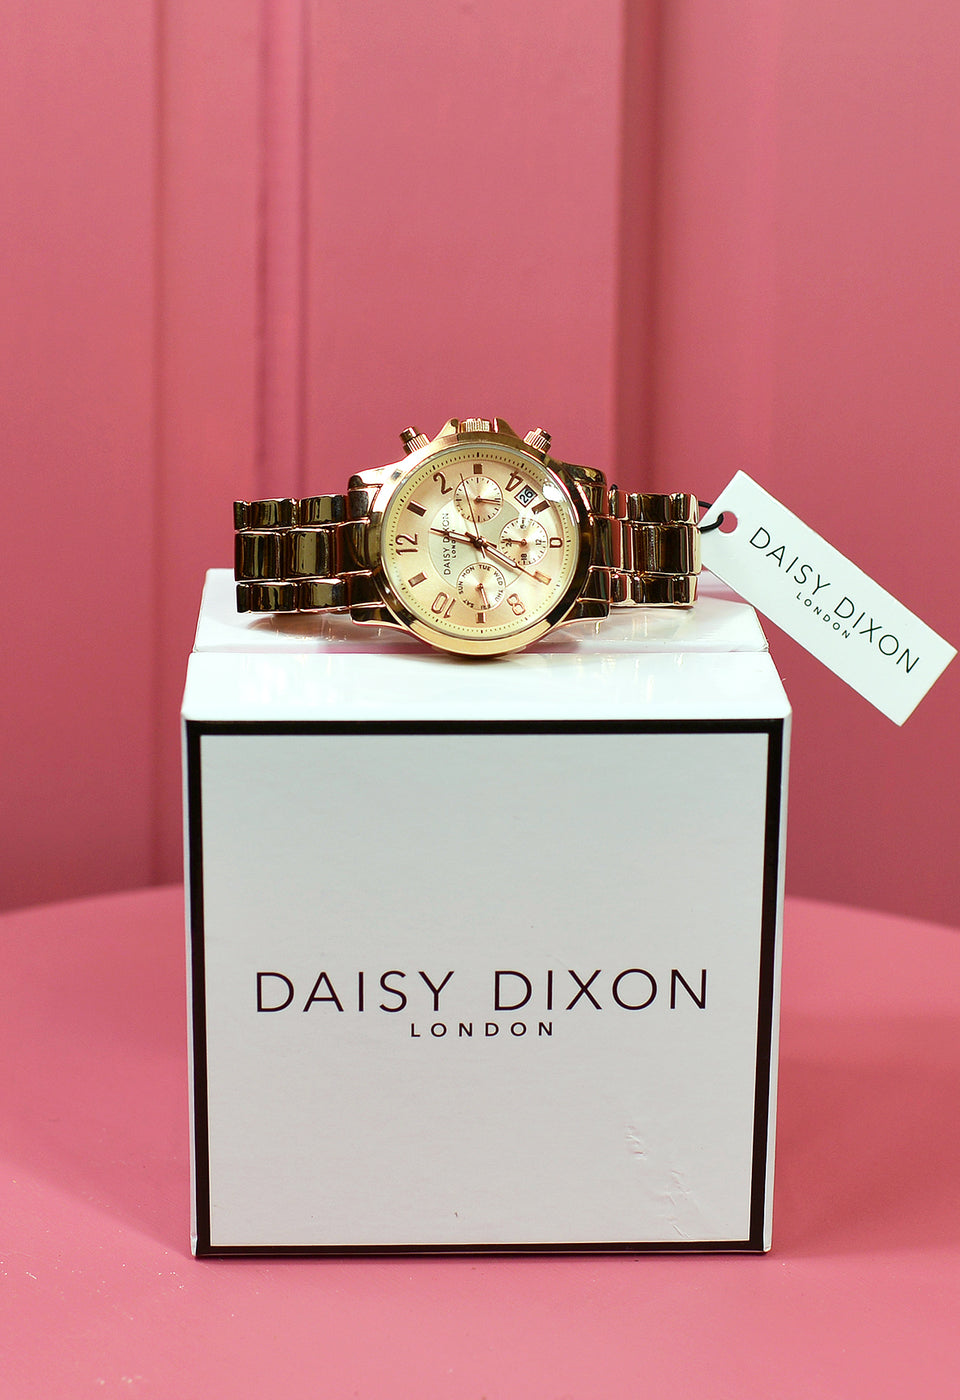 DAISY DICKSON Women's Gold Bracelet, Multi Dial Quartz Watch. NEW with Box.